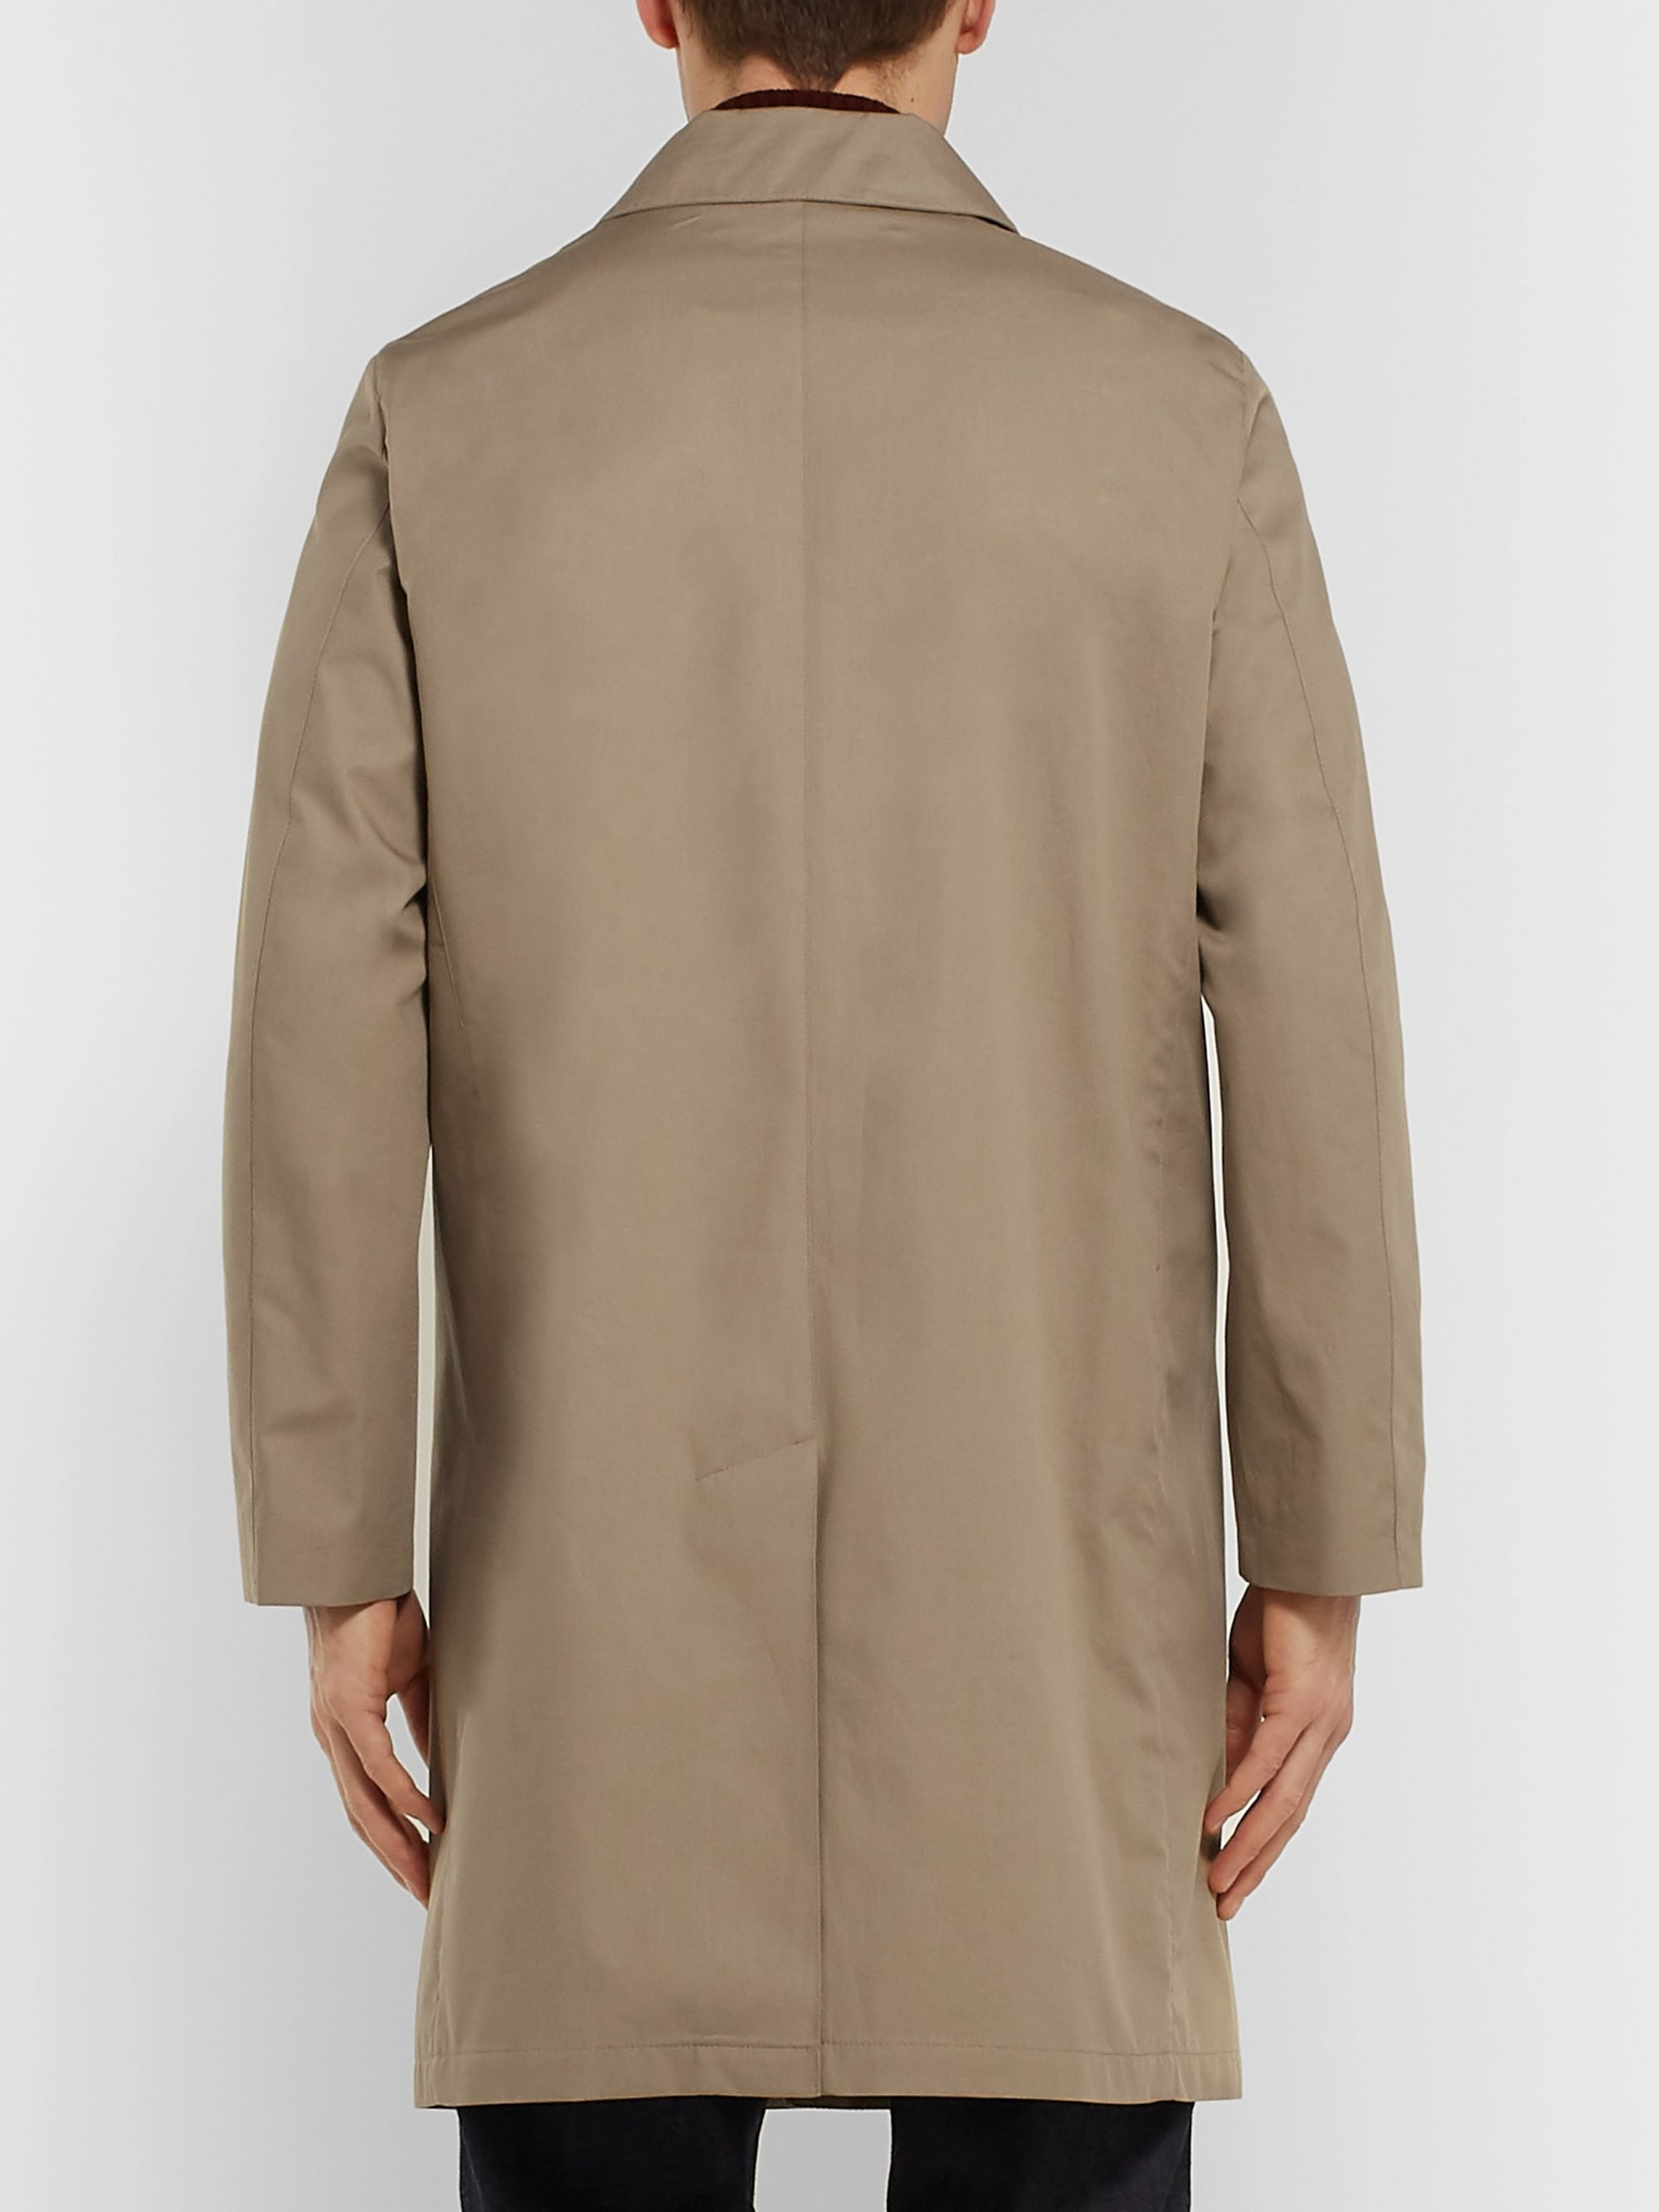 Mackintosh Bonded Cotton Raincoat